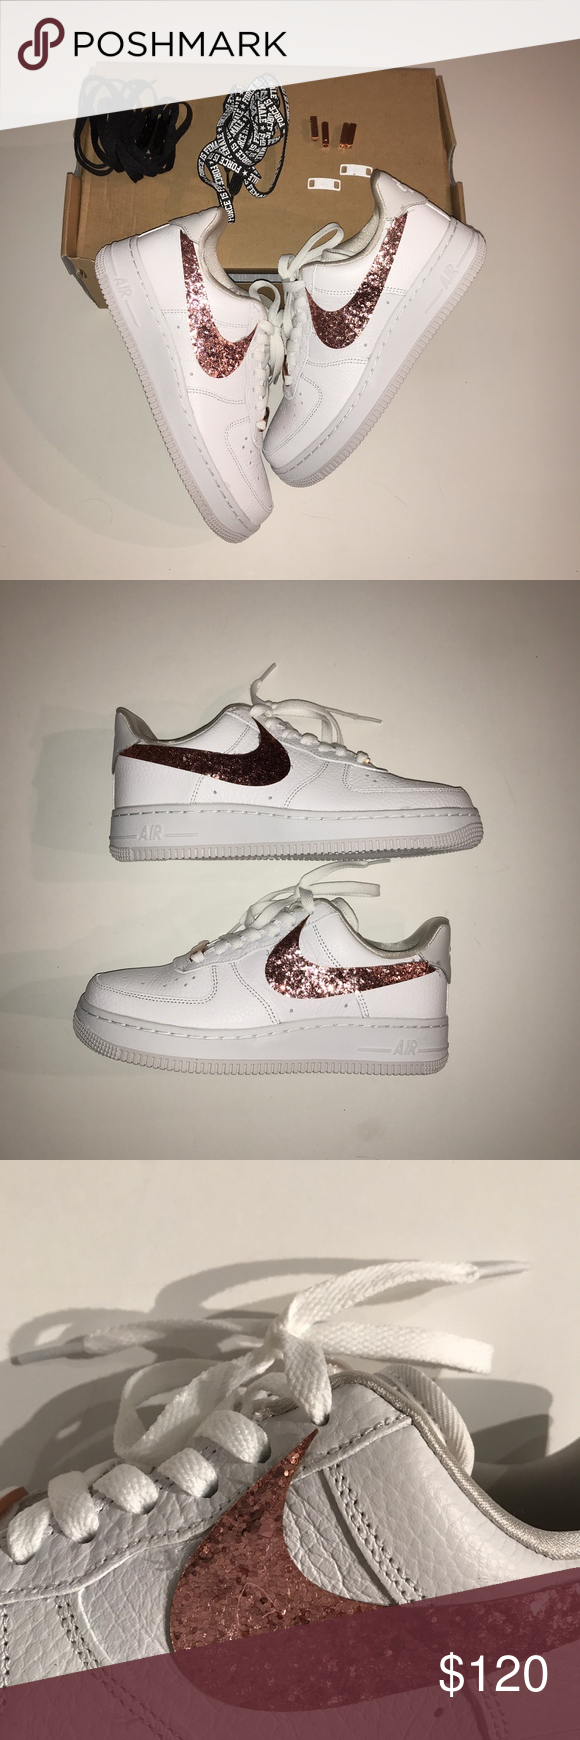 Nike Air Force 1 Rose Gold Glitter Sneakers Shoes New in box rare Nike Air  Force 1 Rose Gold Glitter Sneakers Shoes Comes with sneakers 6299521d1c